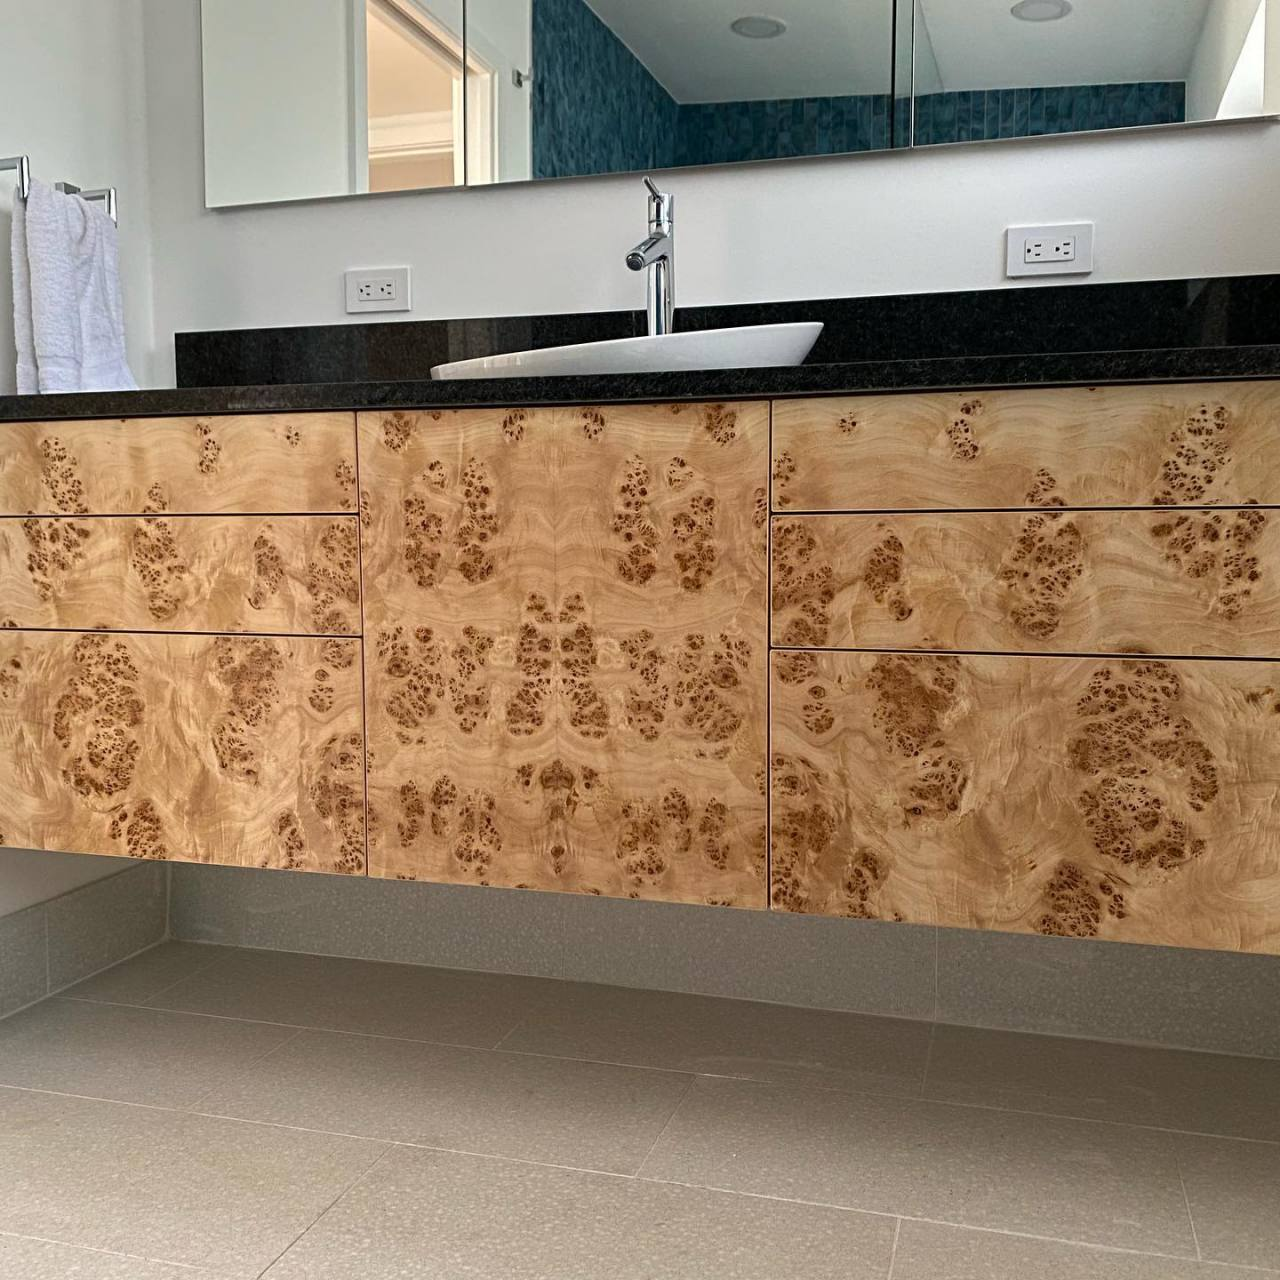 Maple burl and curly maple vanities.